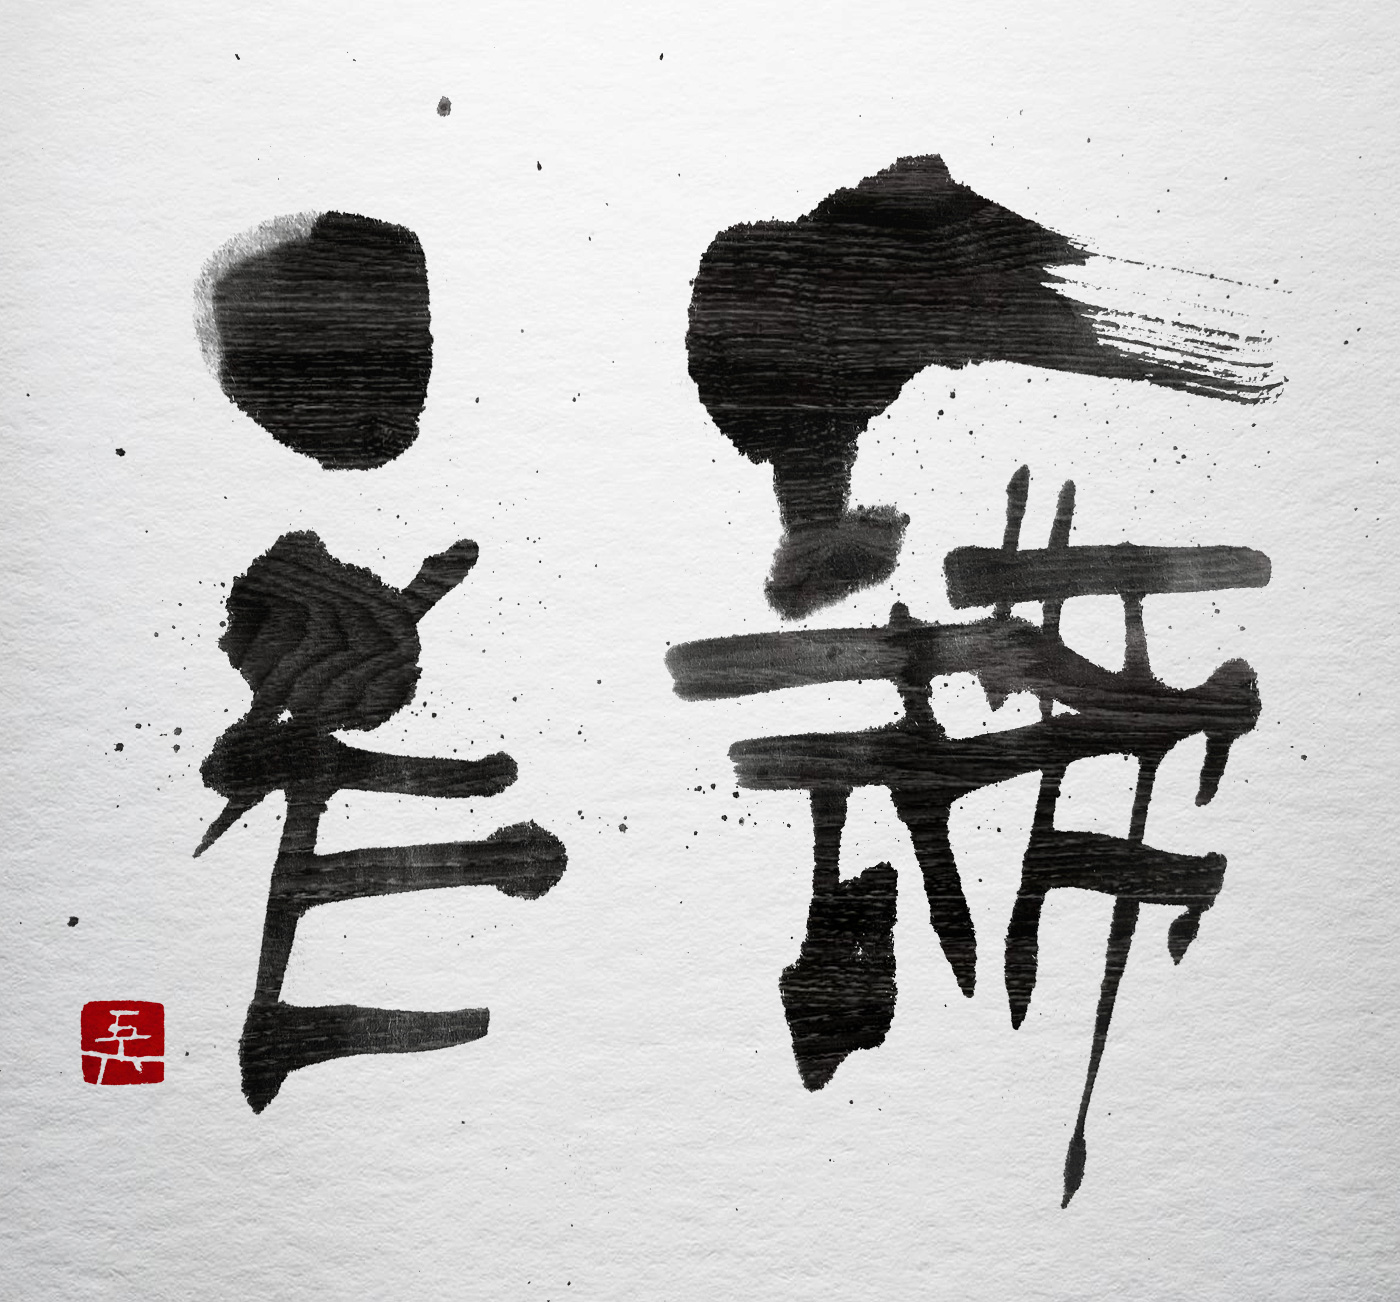 一諦一老 一怒一老 書道作品 japaneseart japanese calligraphy